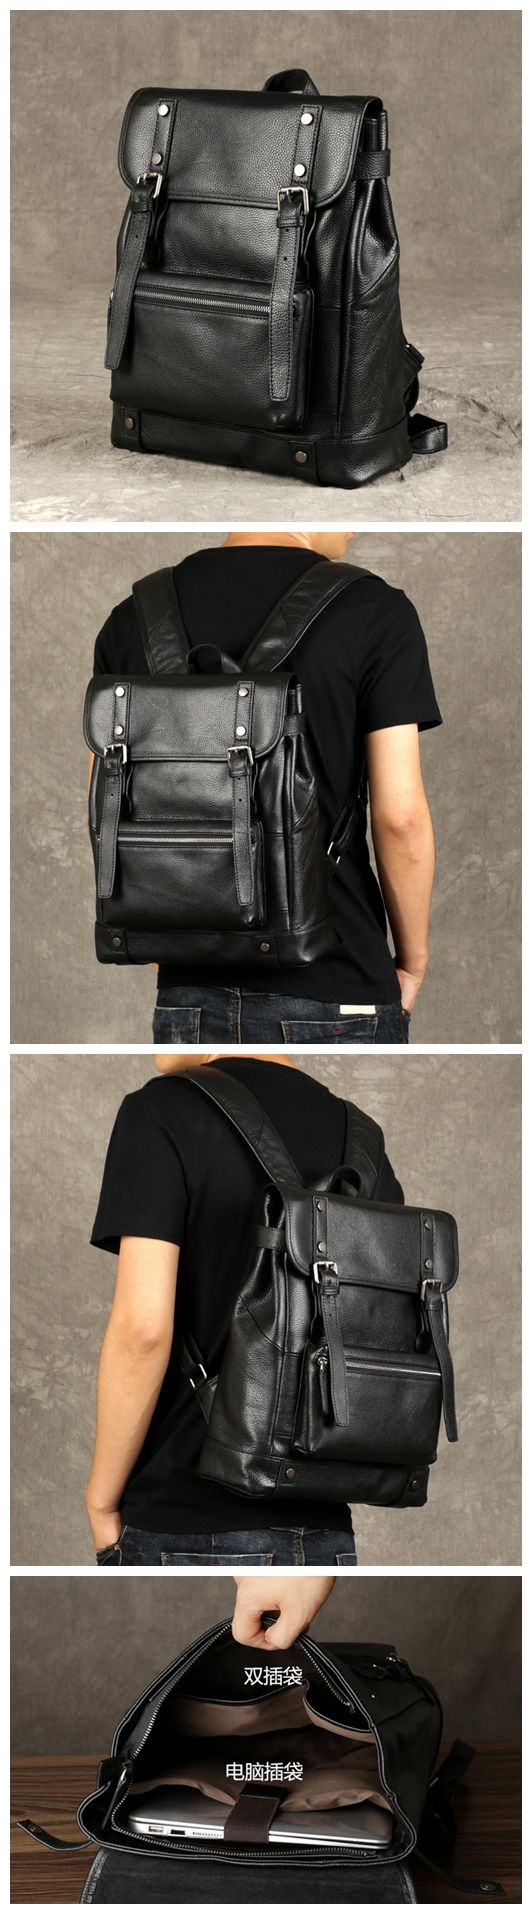 Backpack for Men, Classic Travel Backpack GZ061